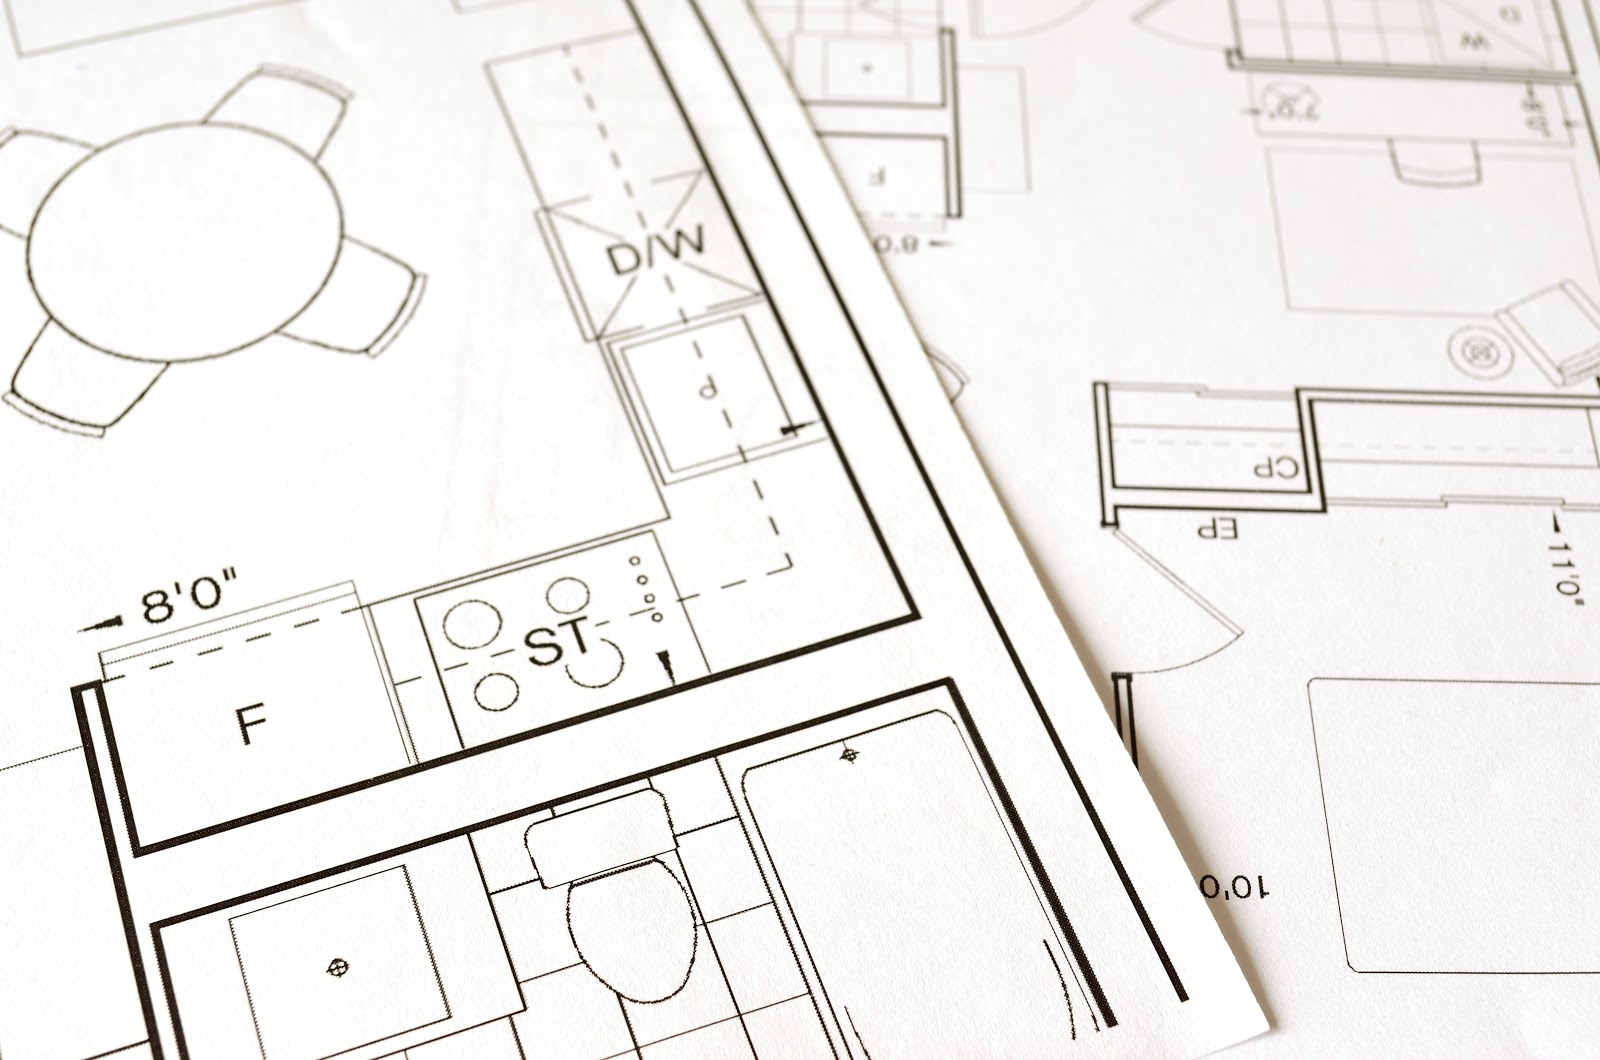 Can Home Builders Build Floor Plans from Other Builders?